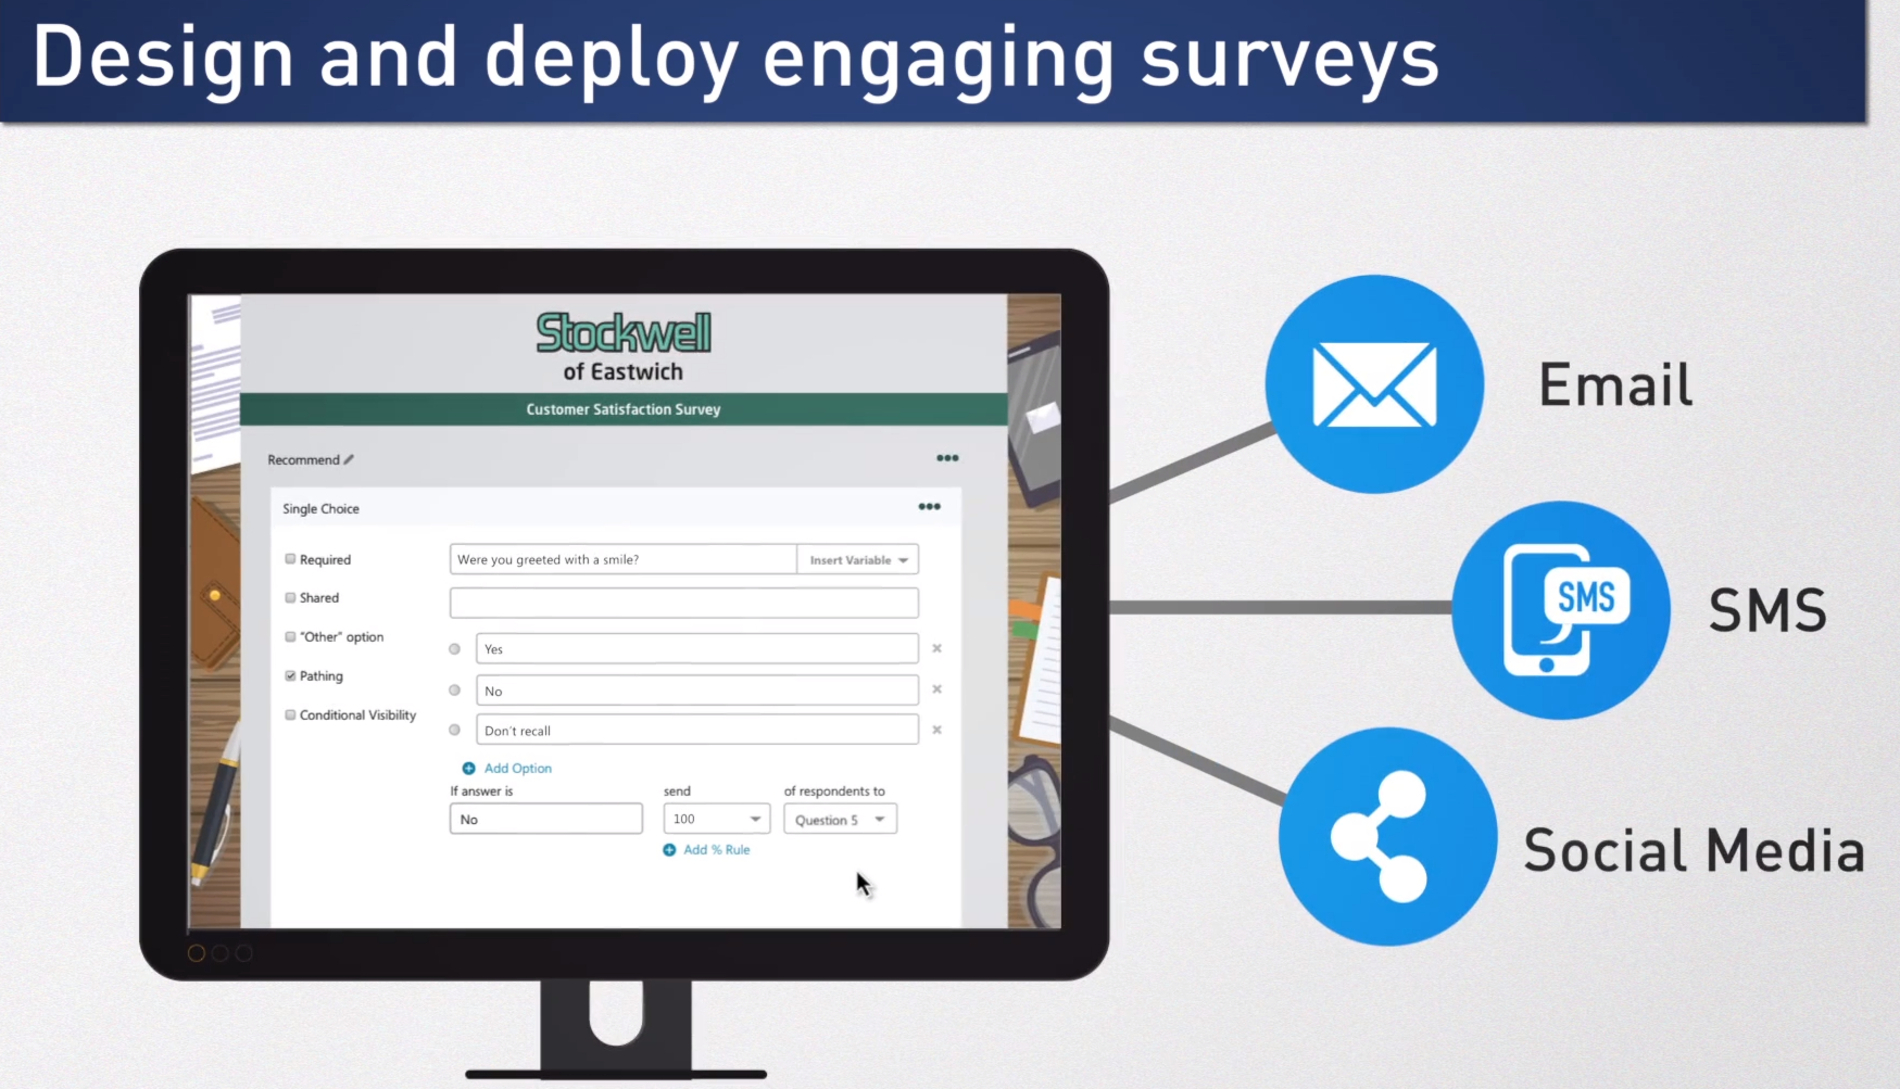 Design and deploy engaging surveys